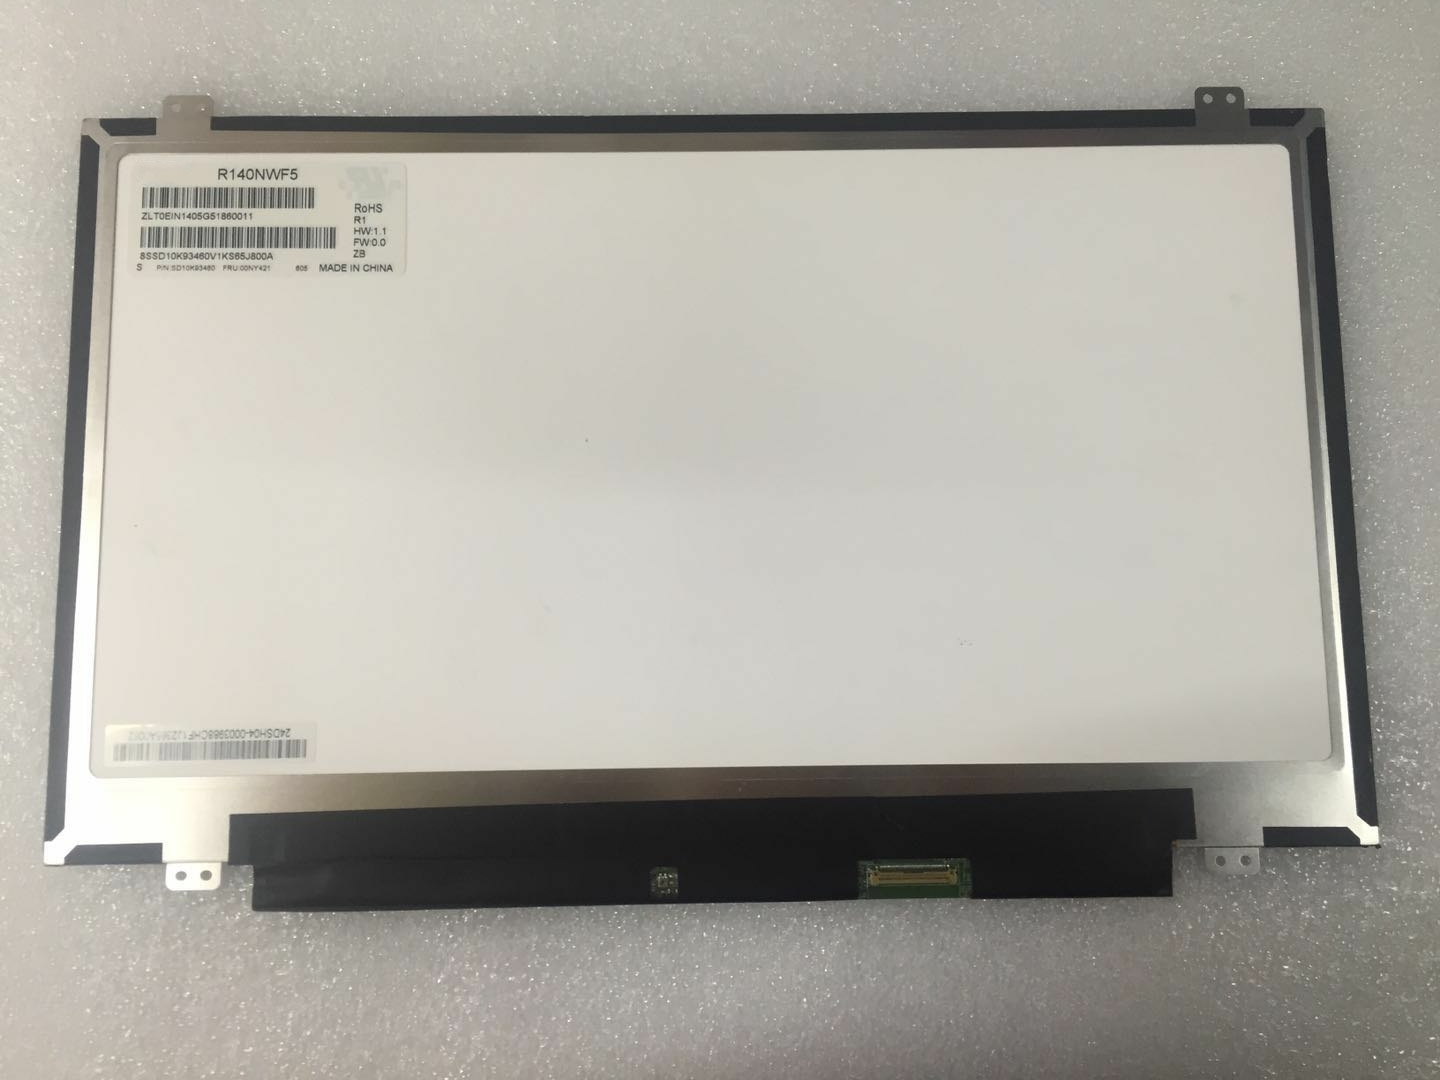 Touch Screen Digitizer Assembly for R140NWF5 LCD with LED display for Lenovo Fru 00NY421 PN SD10K93460